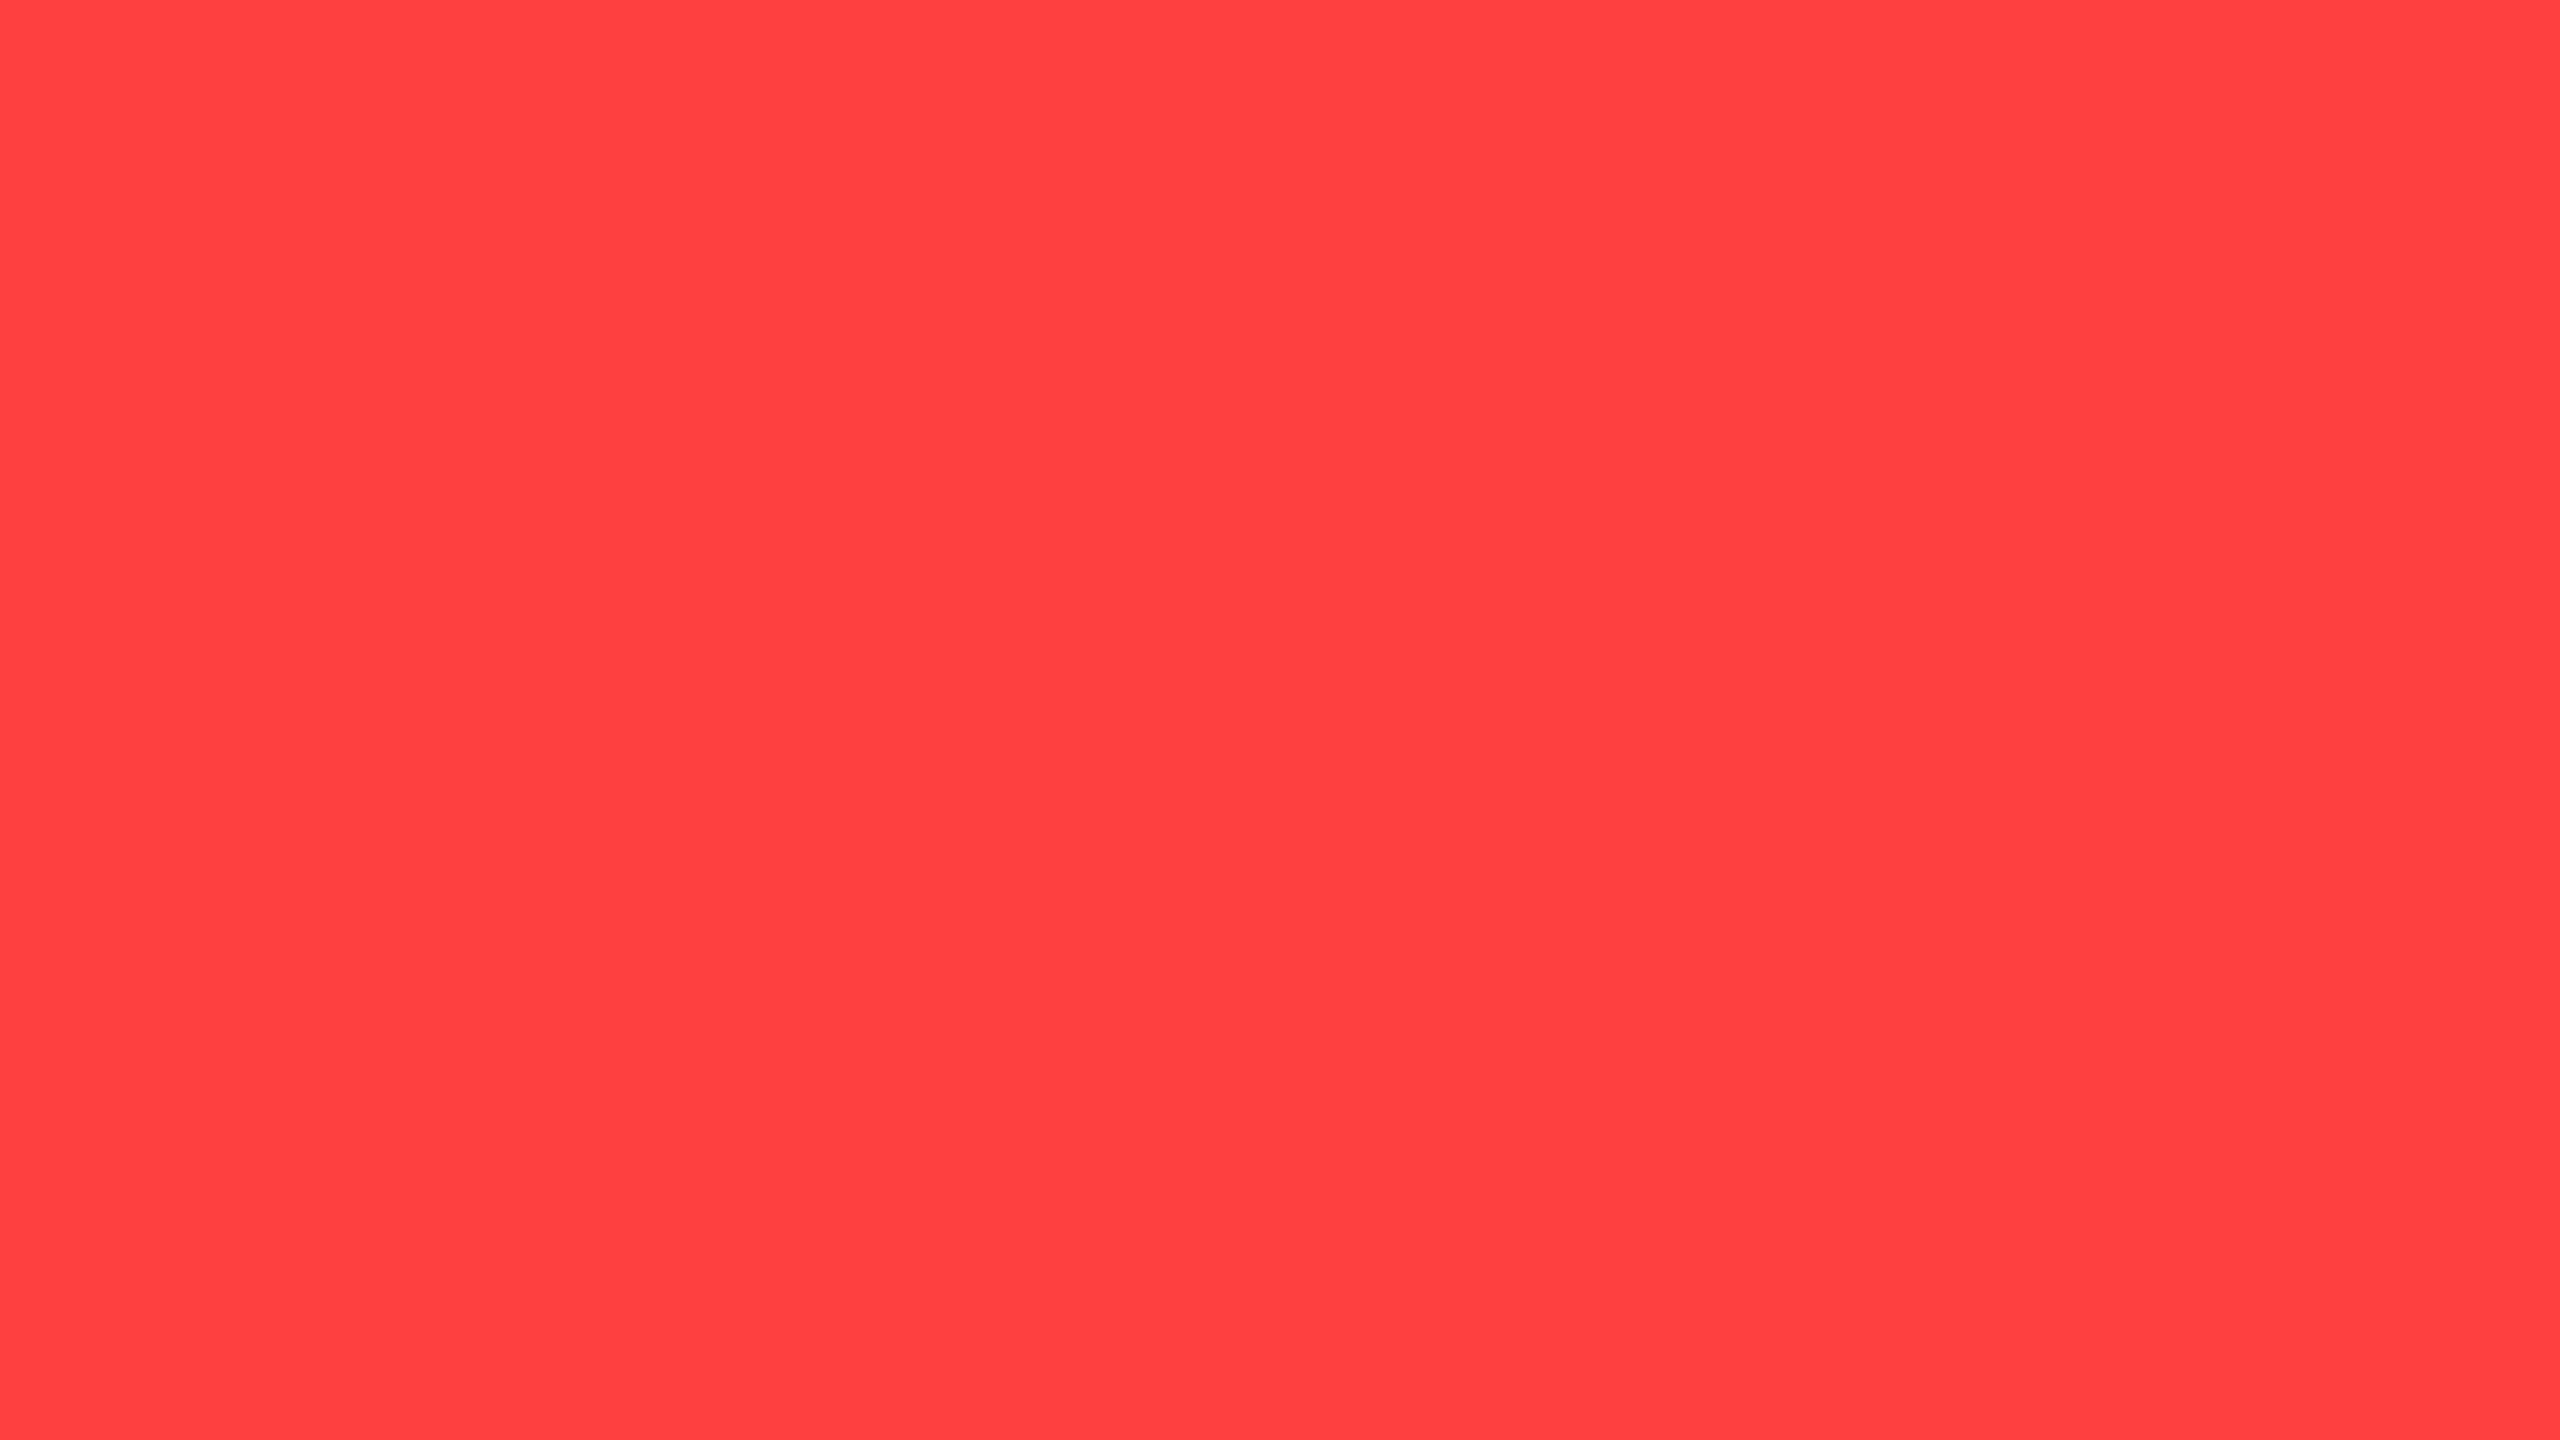 2560x1440 Coral Red Solid Color Background